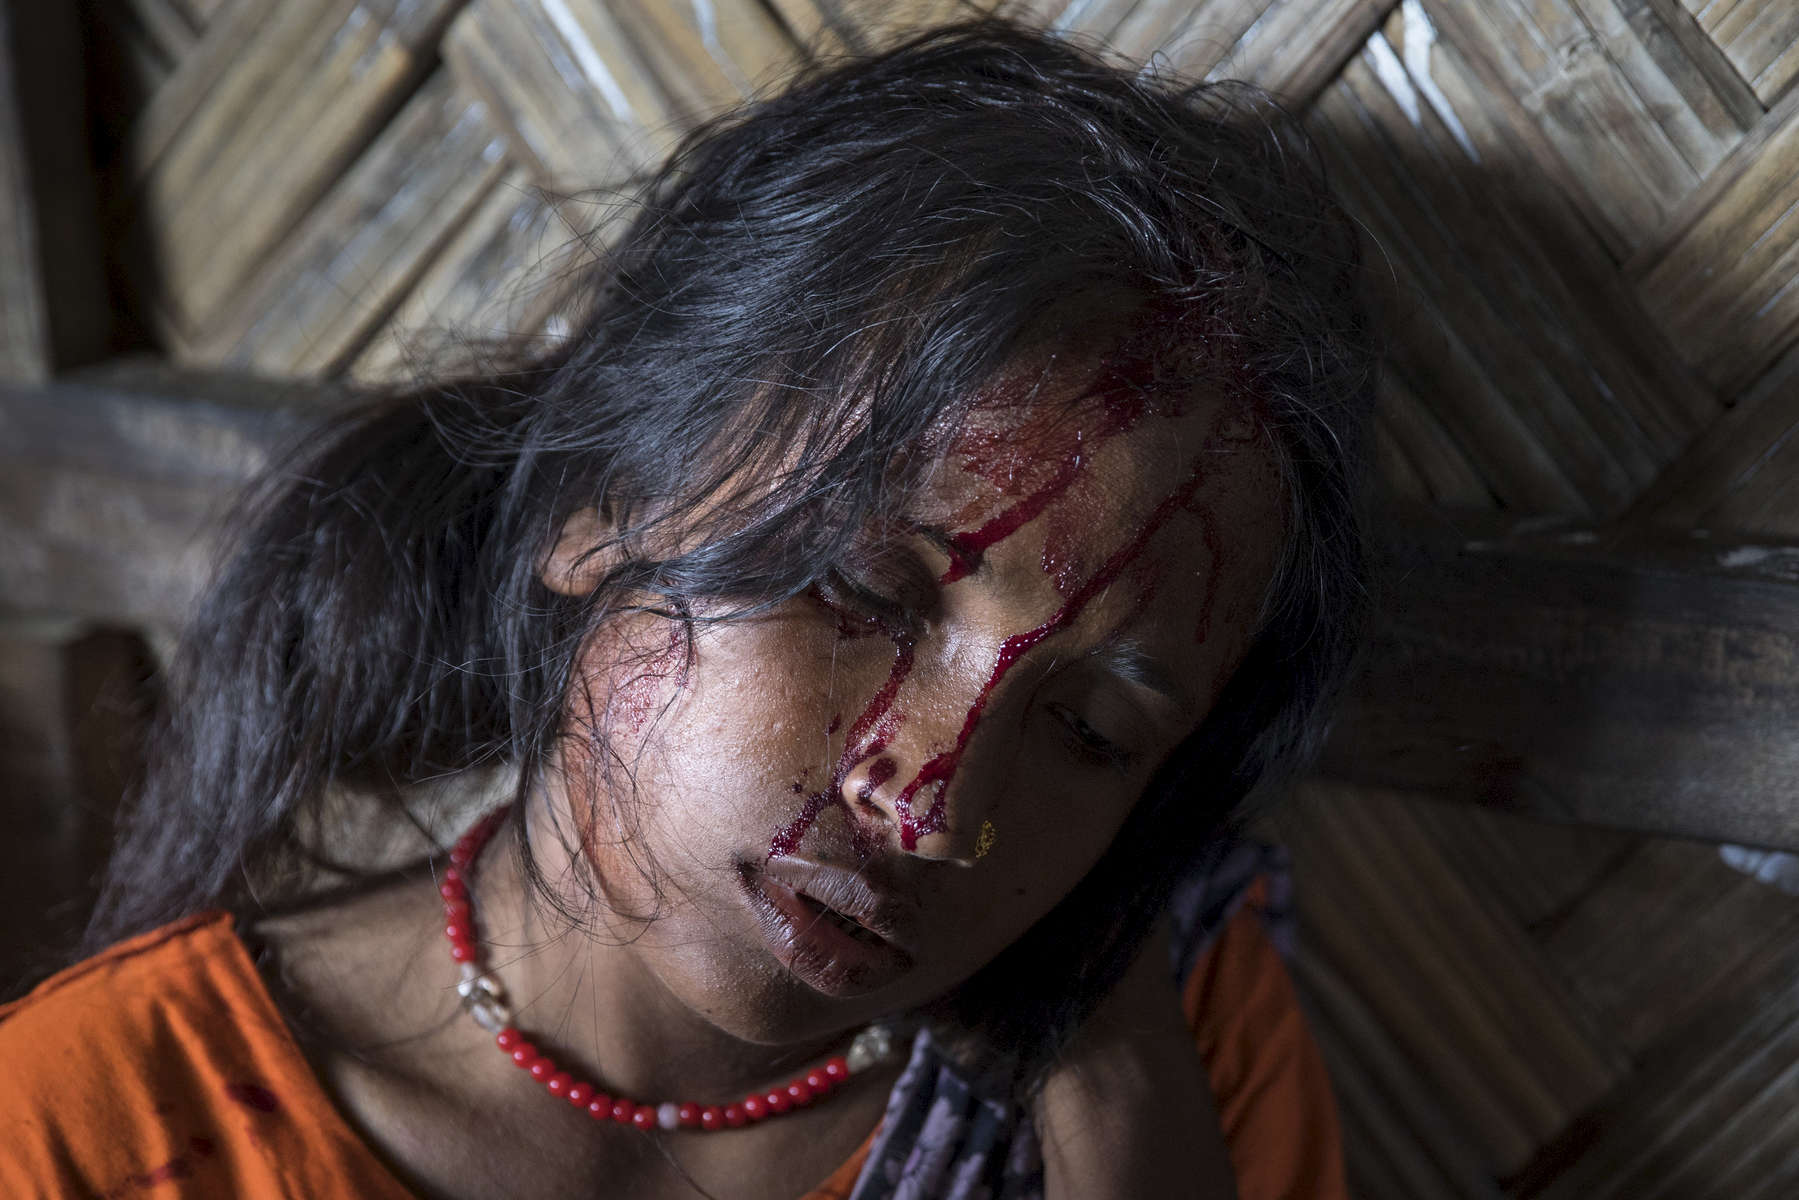 KUTUPALONG, BANGLADESH - OCTOBER 4: Aneta Begum,25,waits for treatment for a head injury after being attacked in the emergency unit at the Kutupalong MSF clinic on October 4, Kutupalong, Cox's Bazar, Bangladesh. Doctors Without Borders/Médecins Sans Frontières (MSF) has been providing comprehensive basic healthcare services at their Kutupalong clinic since 2009. Due to the current Rohingya crisis the clinic has expanded it's inpatient capacity dealing with approximately 2,500 out patient treatments and around 1,000 emergency room per week.   All healthcare services provided at the clinic are free of charge to both the Rohingya refugee population as well as local Bangladeshi patients. MSF has also set up a number of health posts, mobile clinics and water and sanitation services elsewhere in Cox'Äôs Bazar to better respond to the influx. Well over a half a million Rohingya refugees have fled into Bangladesh since late August during the outbreak of violence in Rakhine state causing a humanitarian crisis in the region with continued challenges for aid agencies. (Photo by Paula Bronstein/Getty Images)